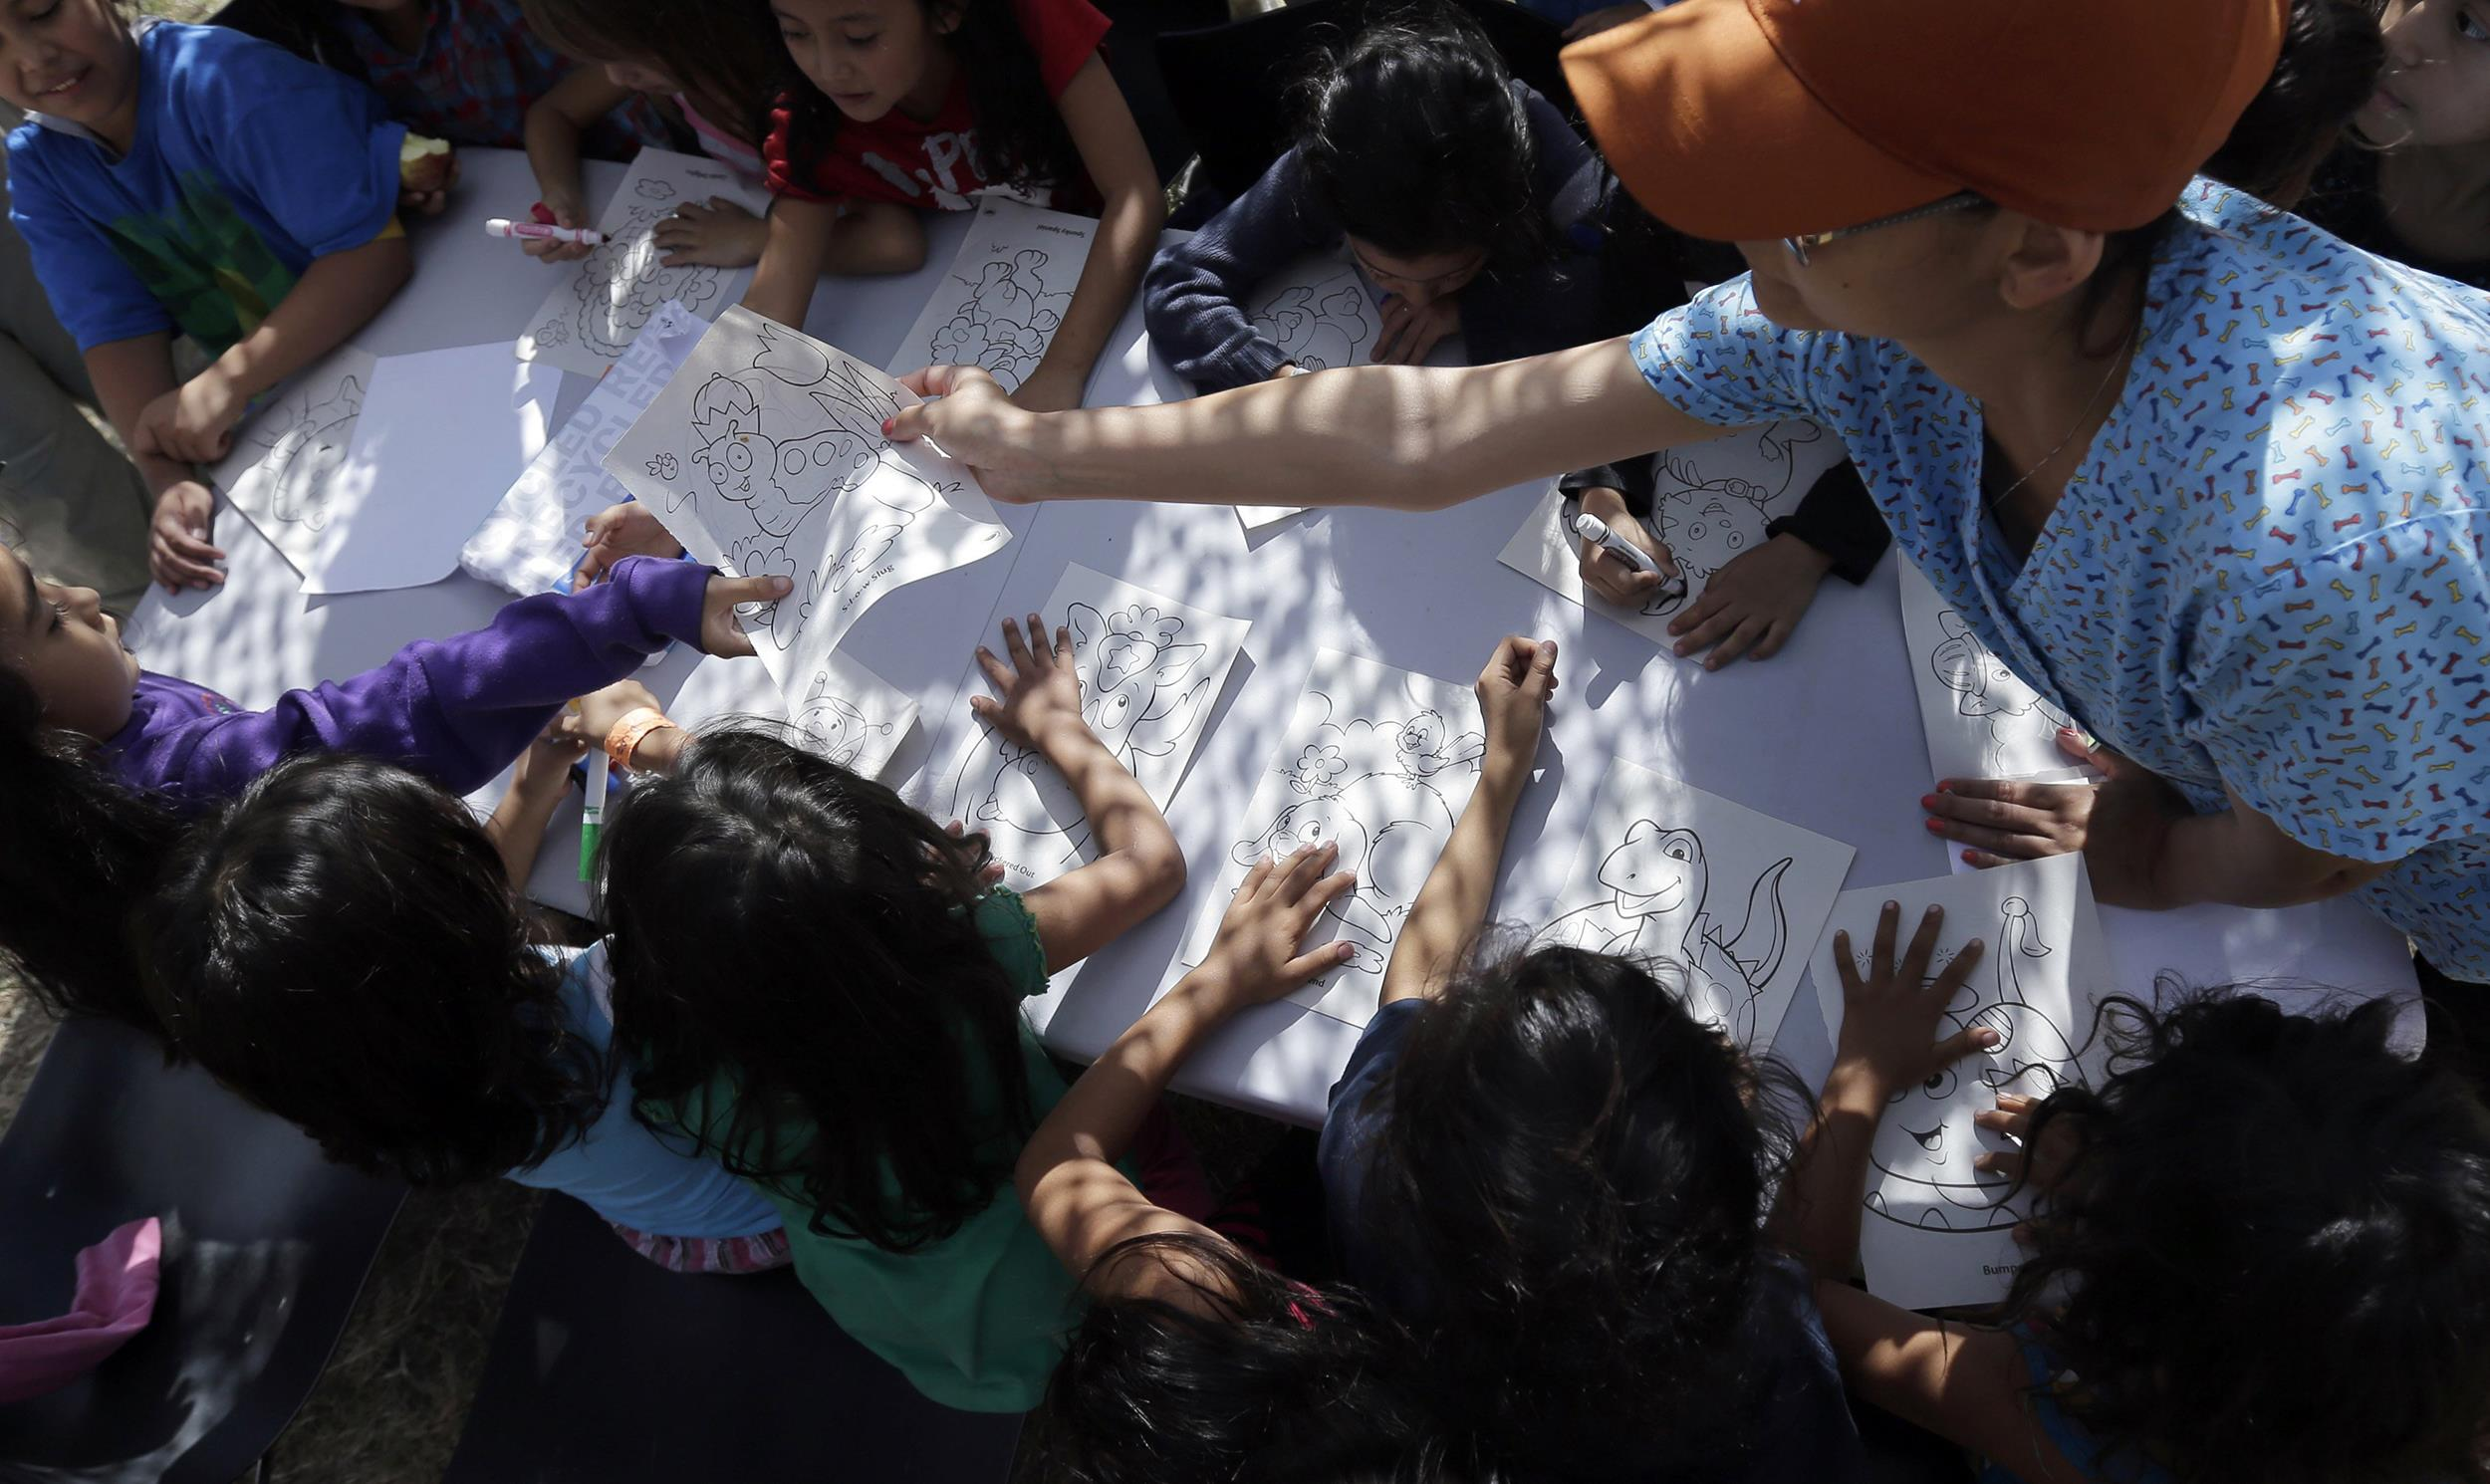 Image: Detainees color and draw at a U.S. Customs and Border Protection processing facility